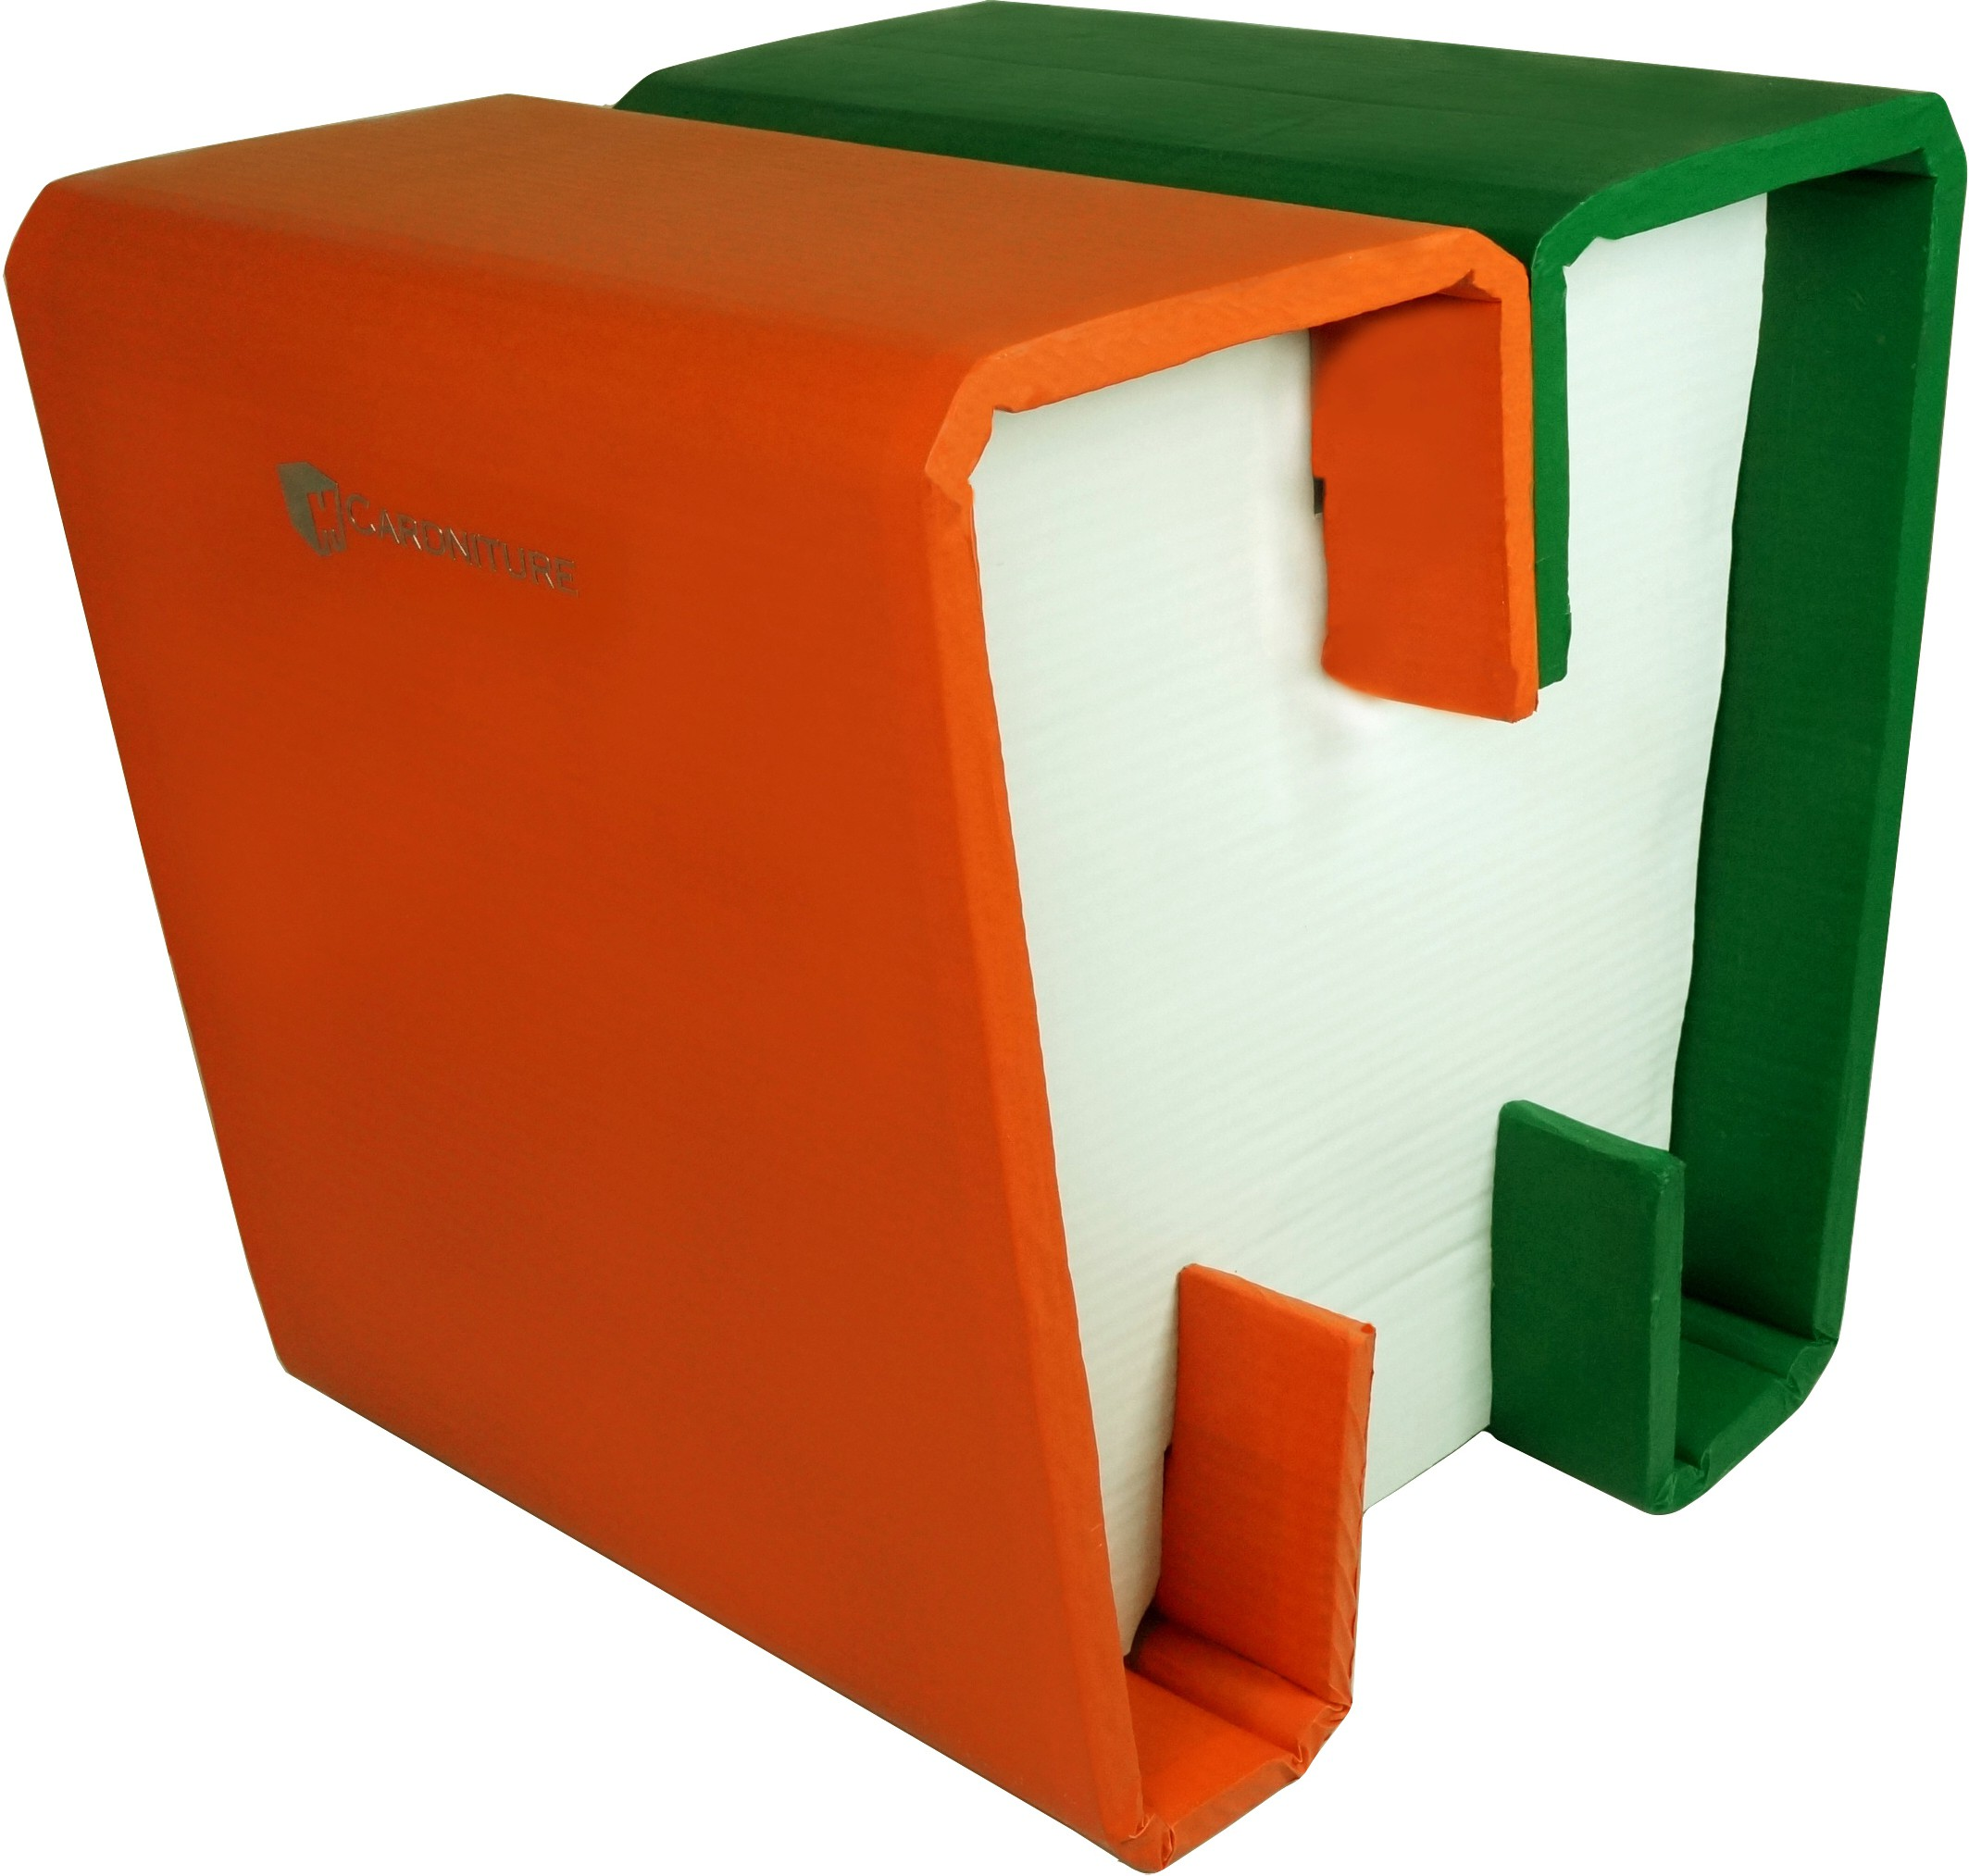 View Cardniture ZING Living & Bedroom Stool(Orange, White, Green) Furniture (Cardniture)